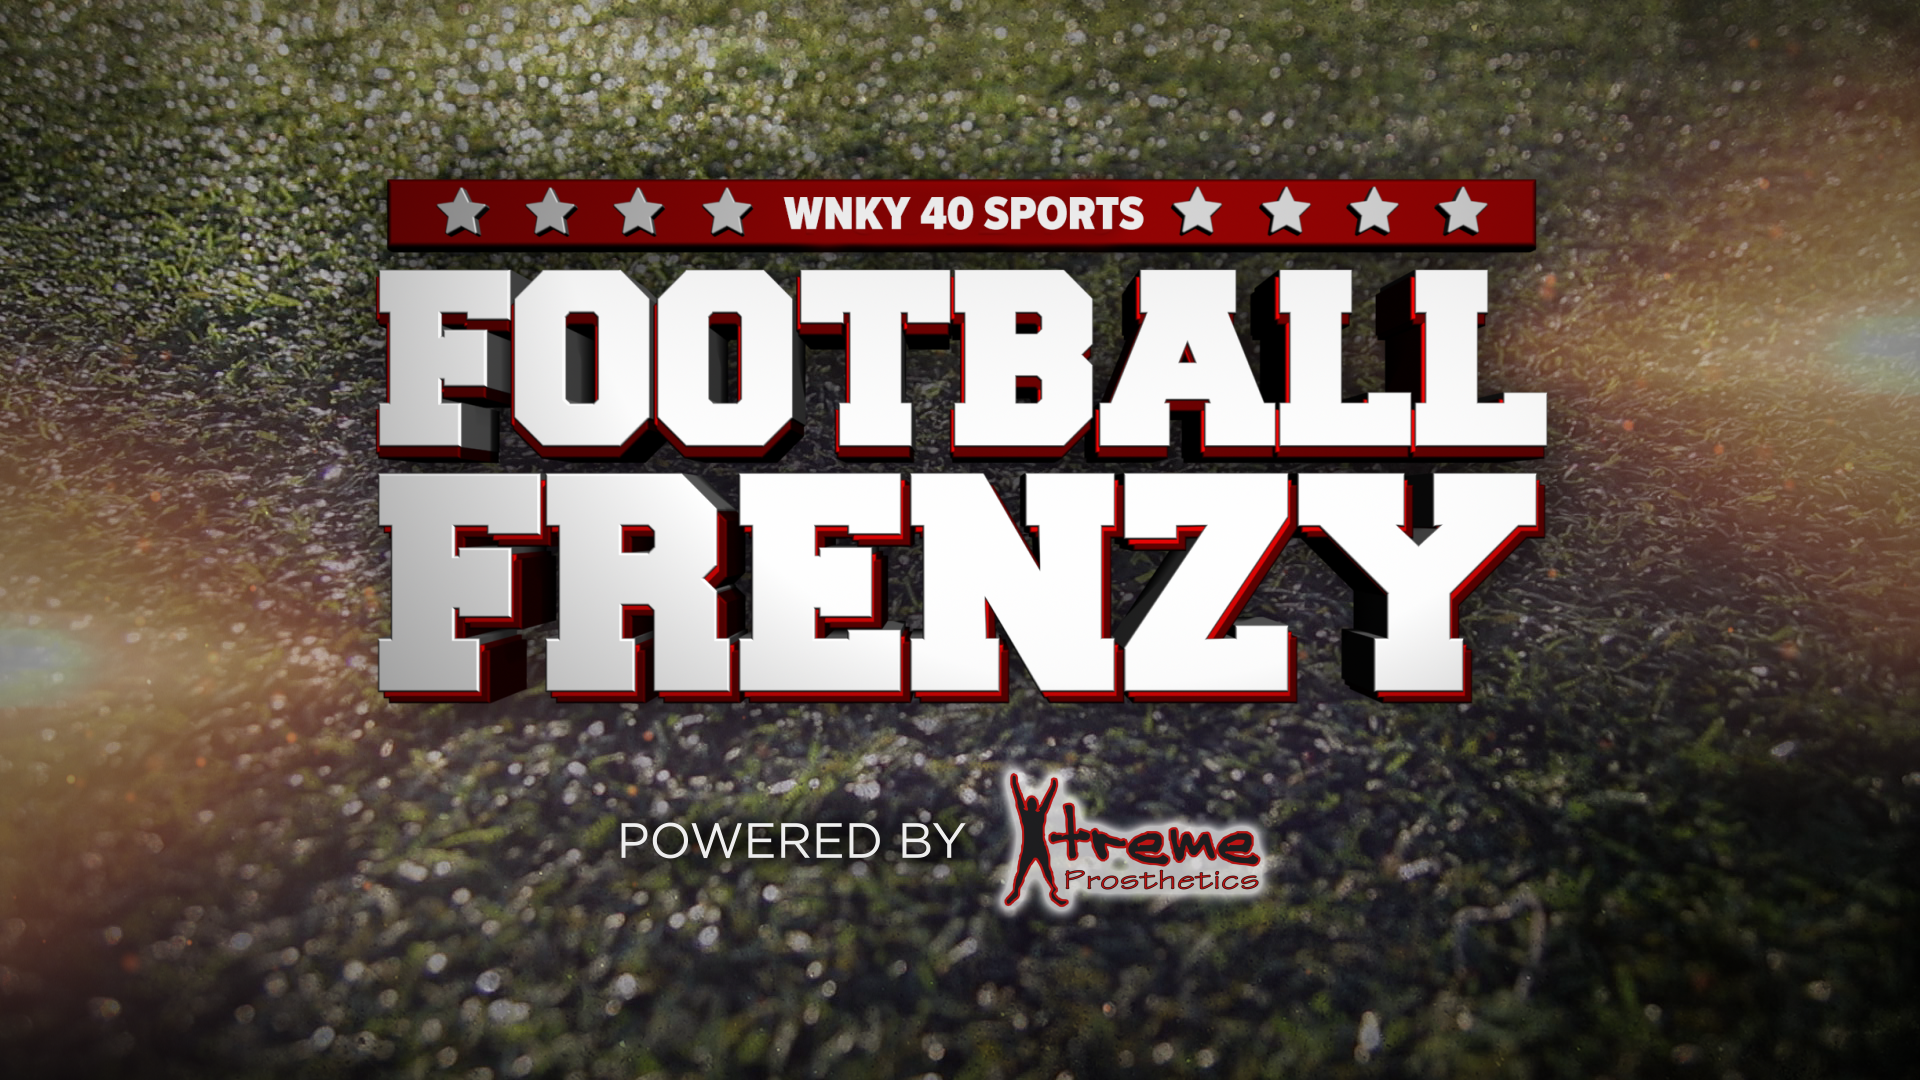 Football Frenzy Feature Image